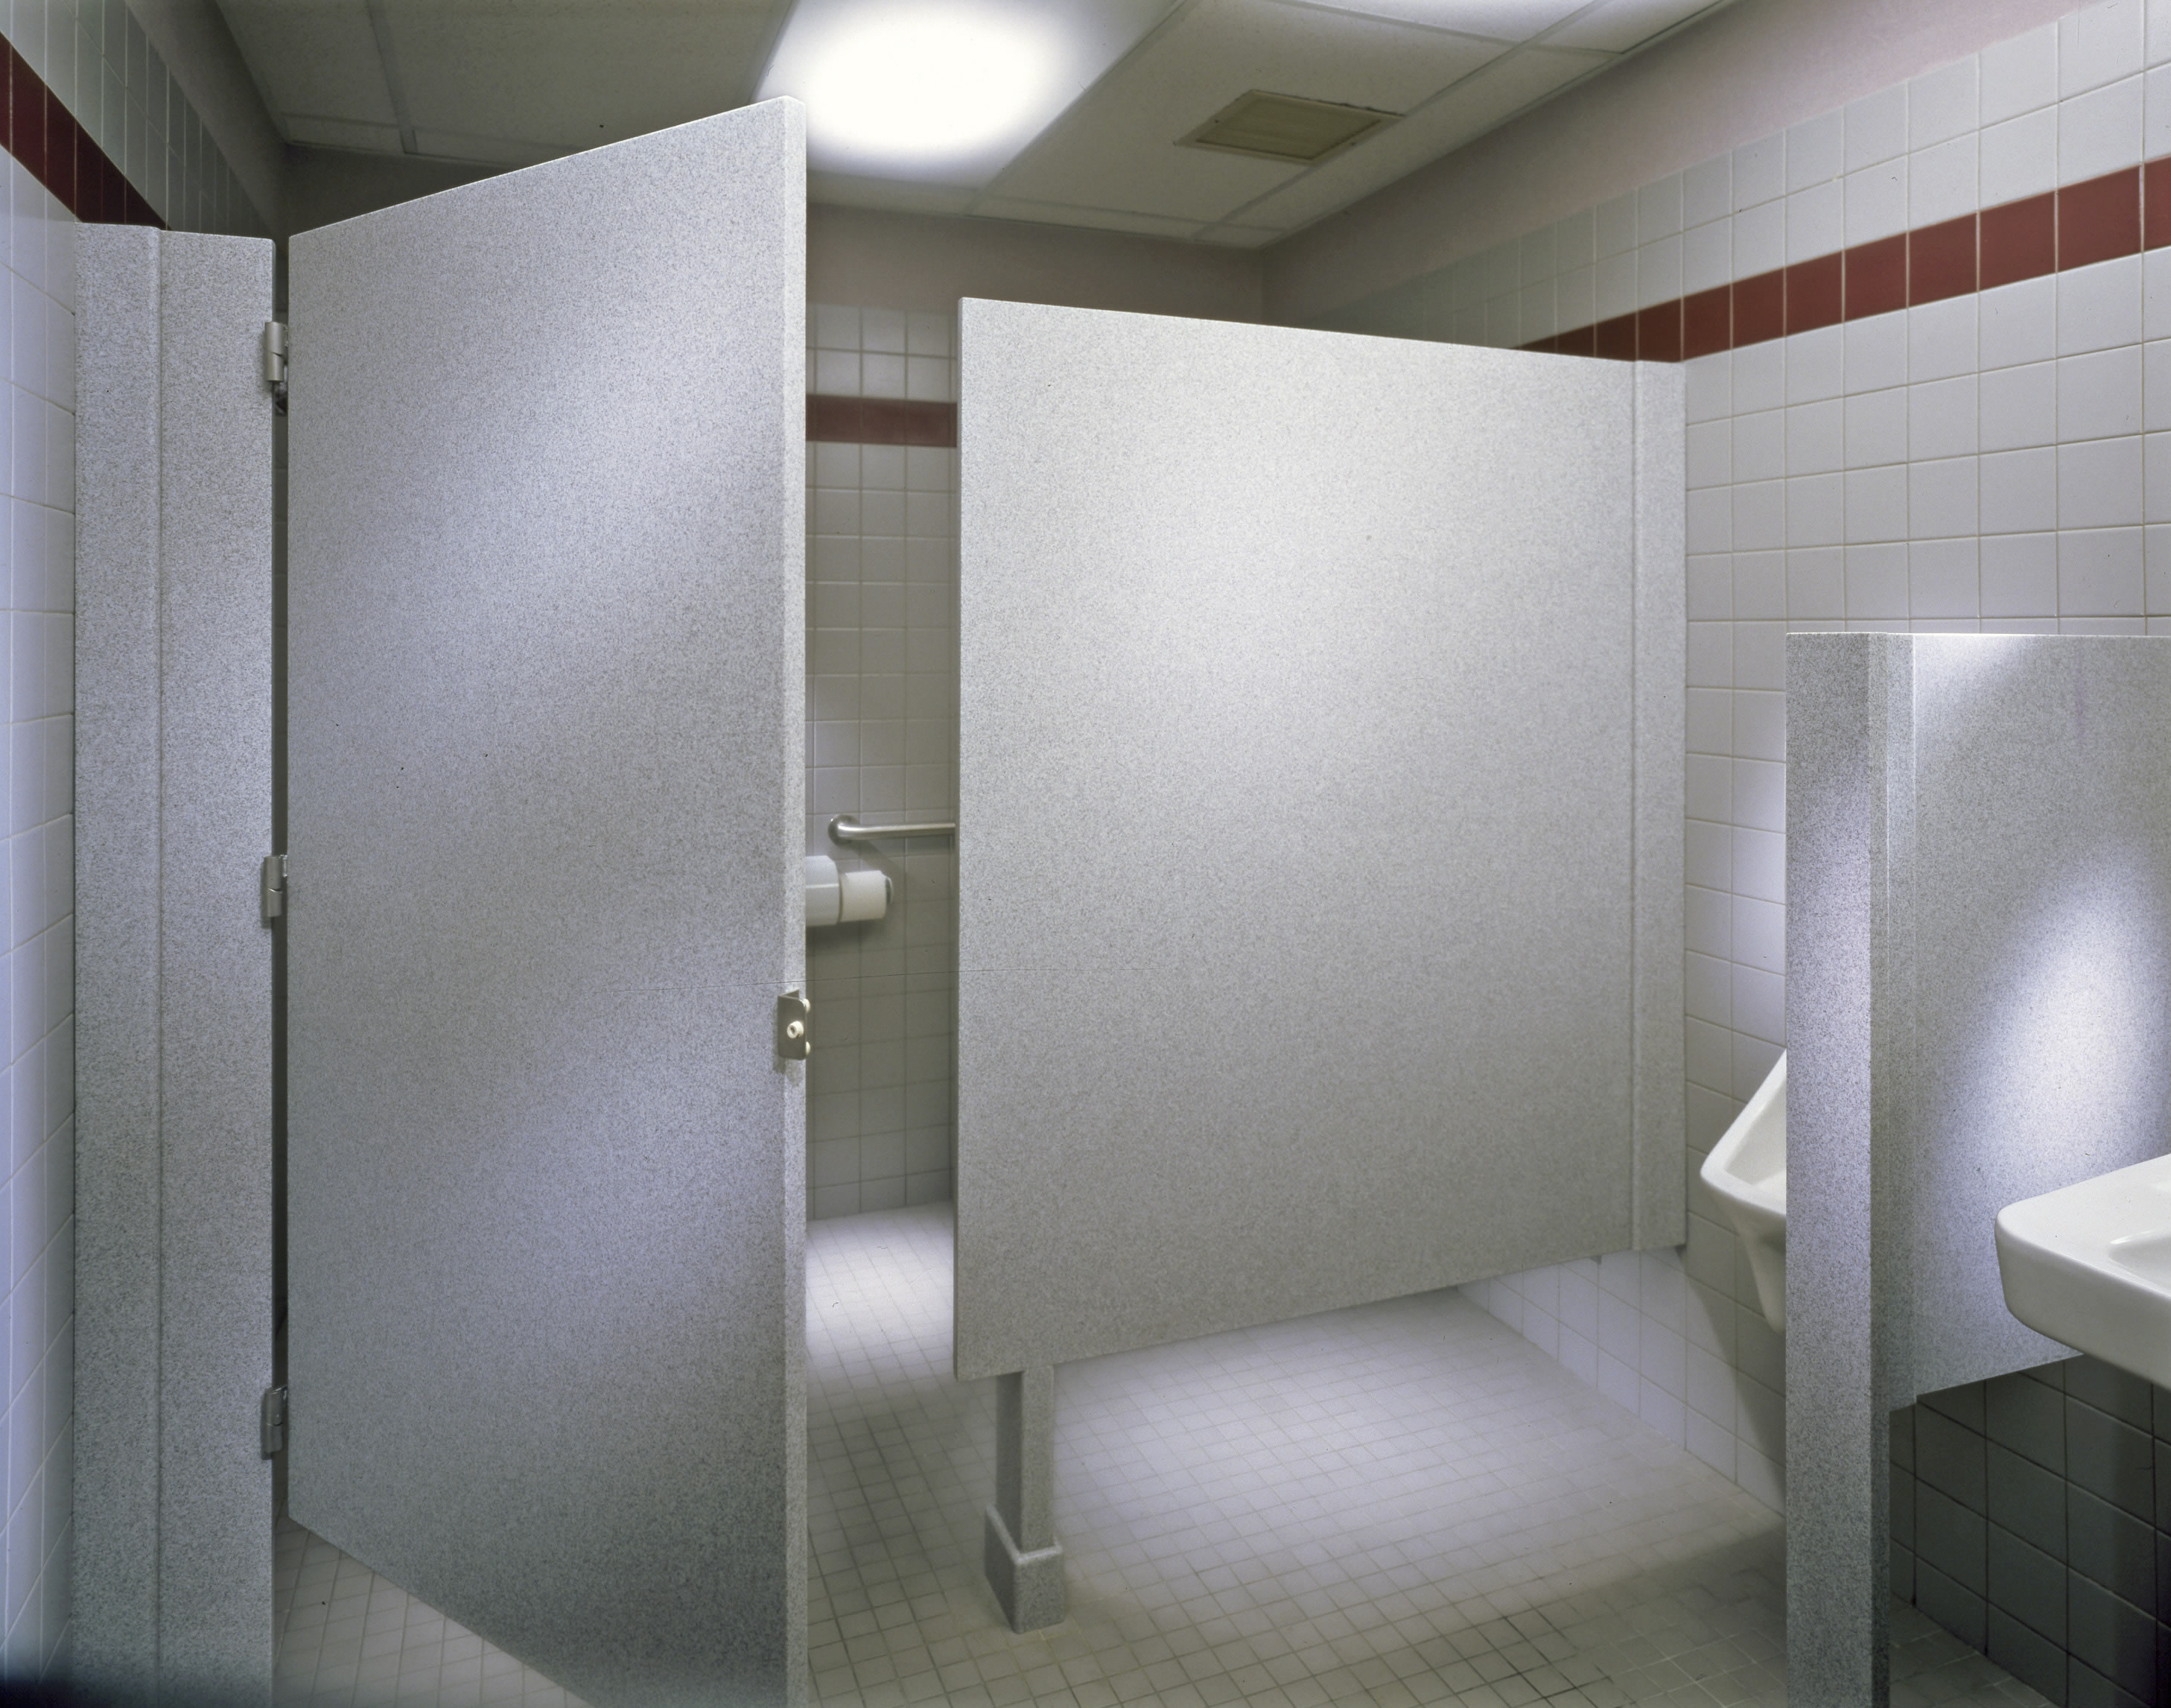 ShowerShapes Bathrooms DividersStalls GW Surfaces - Commercial bathroom stall dividers